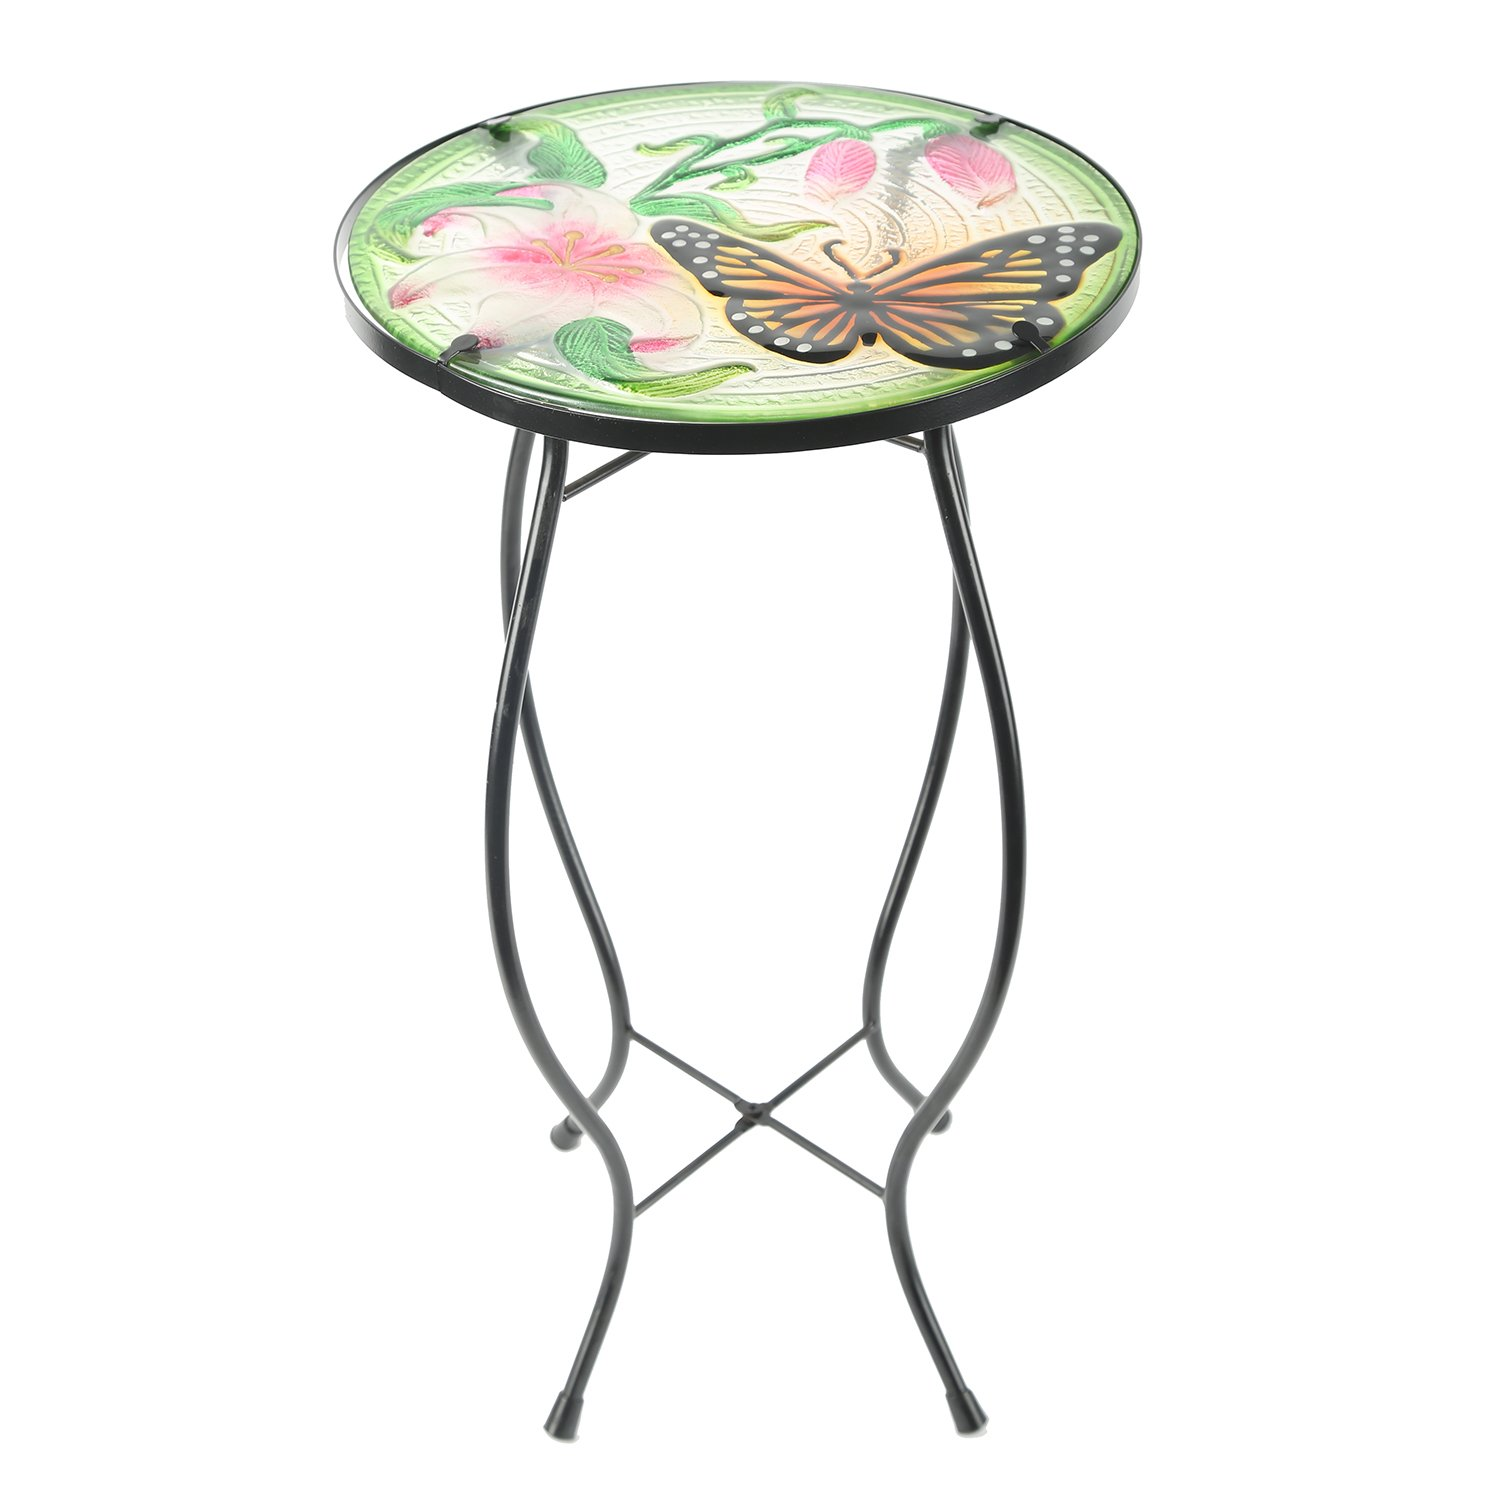 cedar home side table outdoor garden patio metal accent cbl desk with round hand painted glass pink end faux leather furniture west elm throws small tub chair white marble top